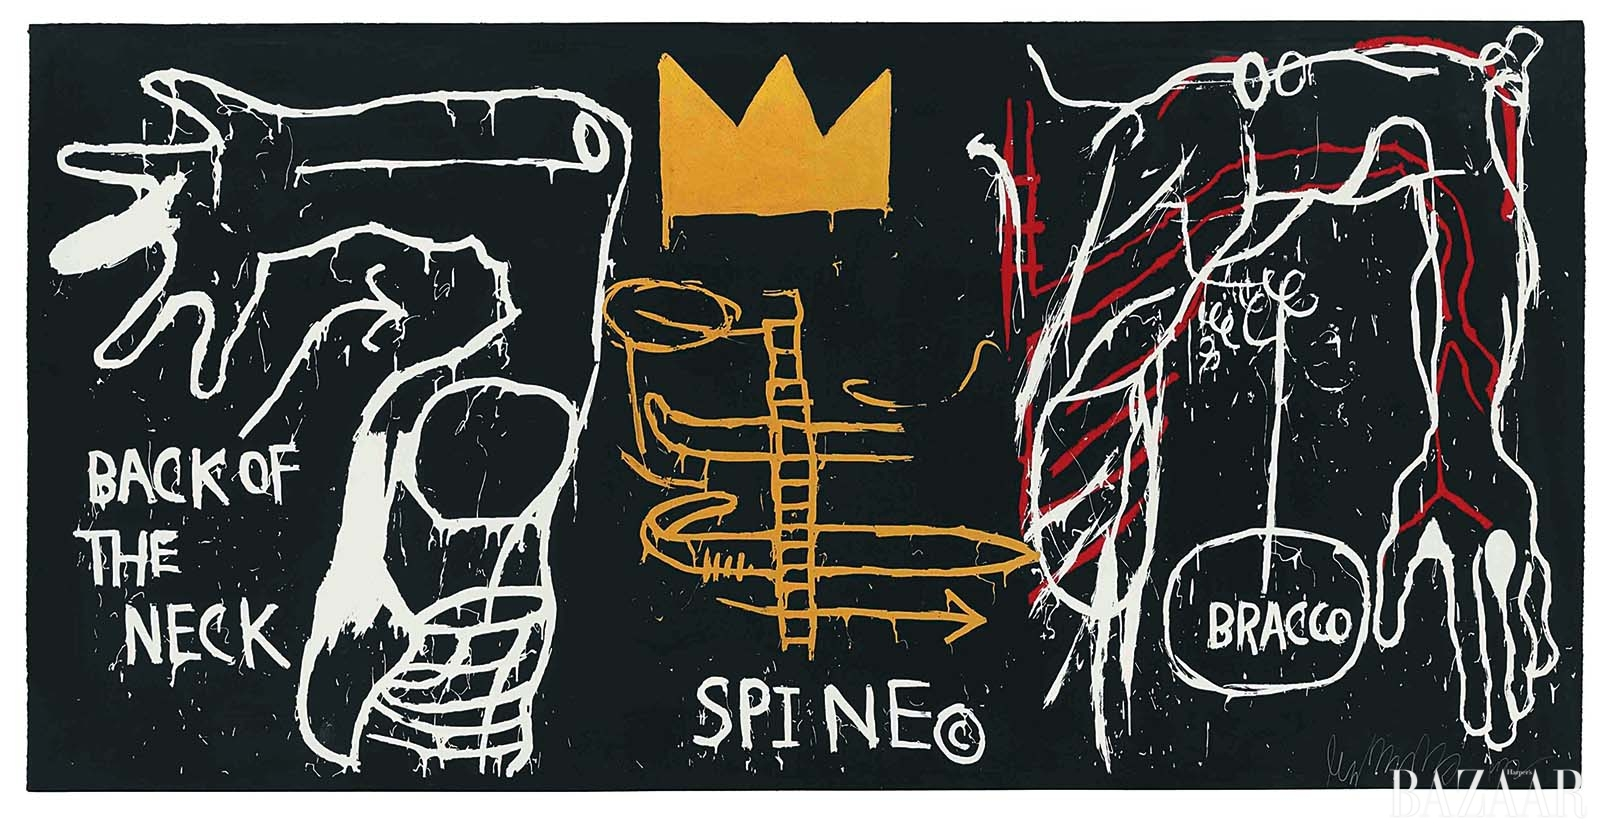 'Back of the Neck', 1983 ©The Estate of Jean-Michel Basquiat by SIAE 201